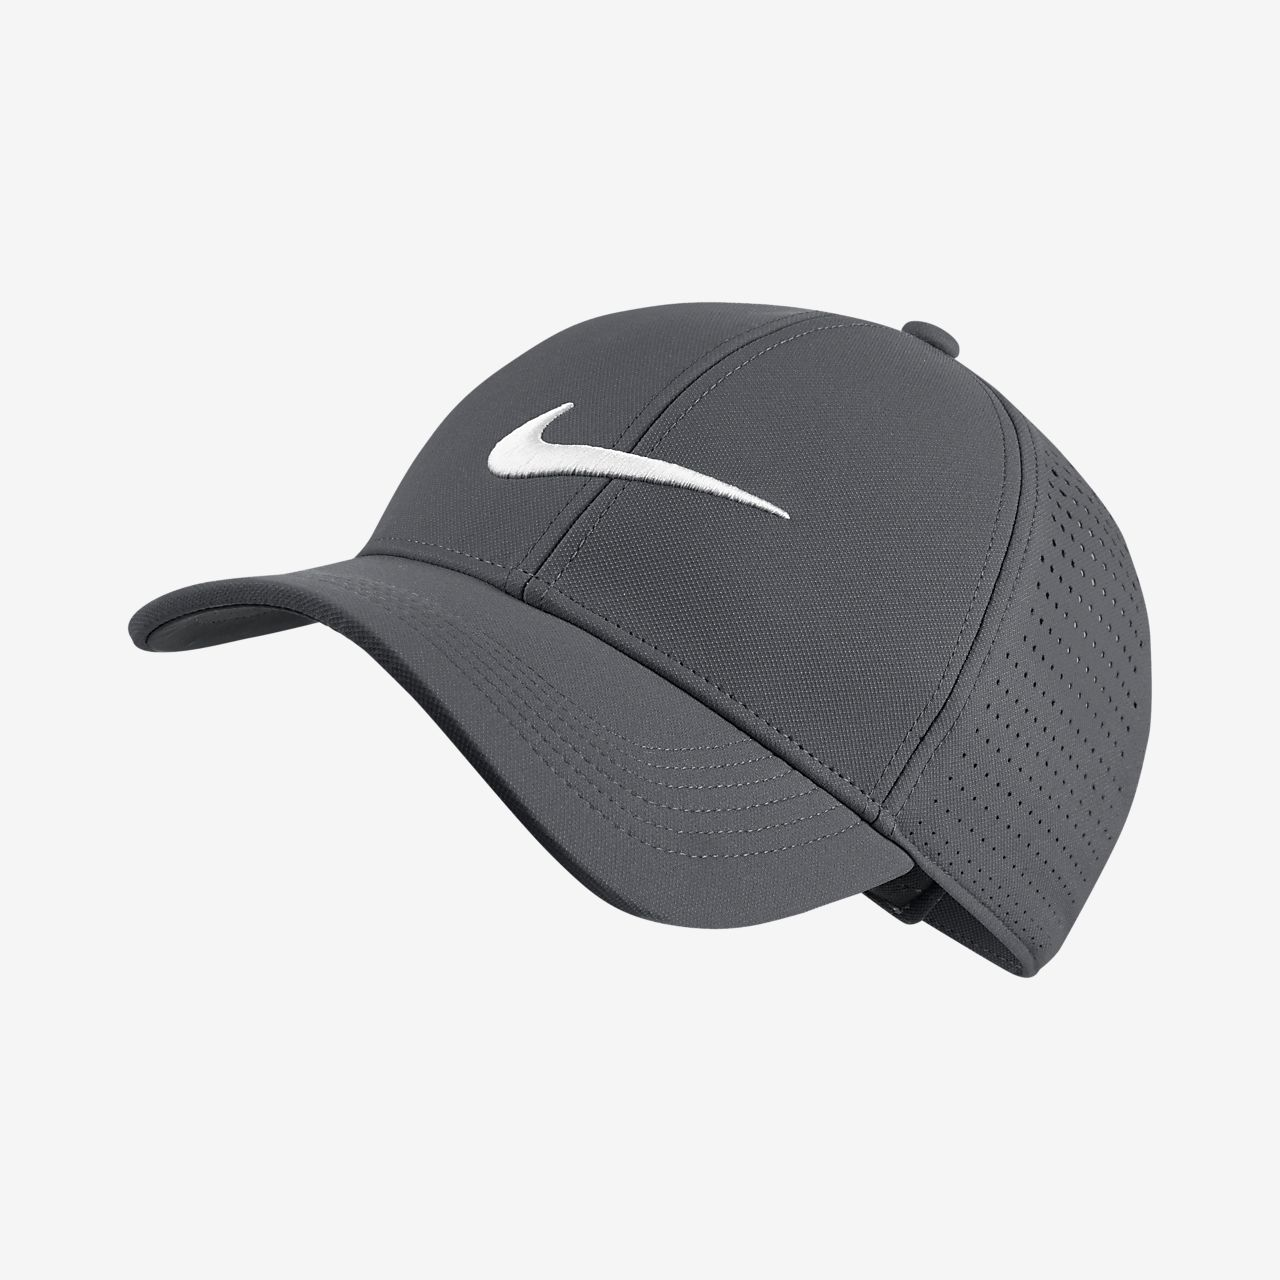 de07d0e94833 Nike Legacy 91 Perforated Adjustable Golf Hat. Nike.com